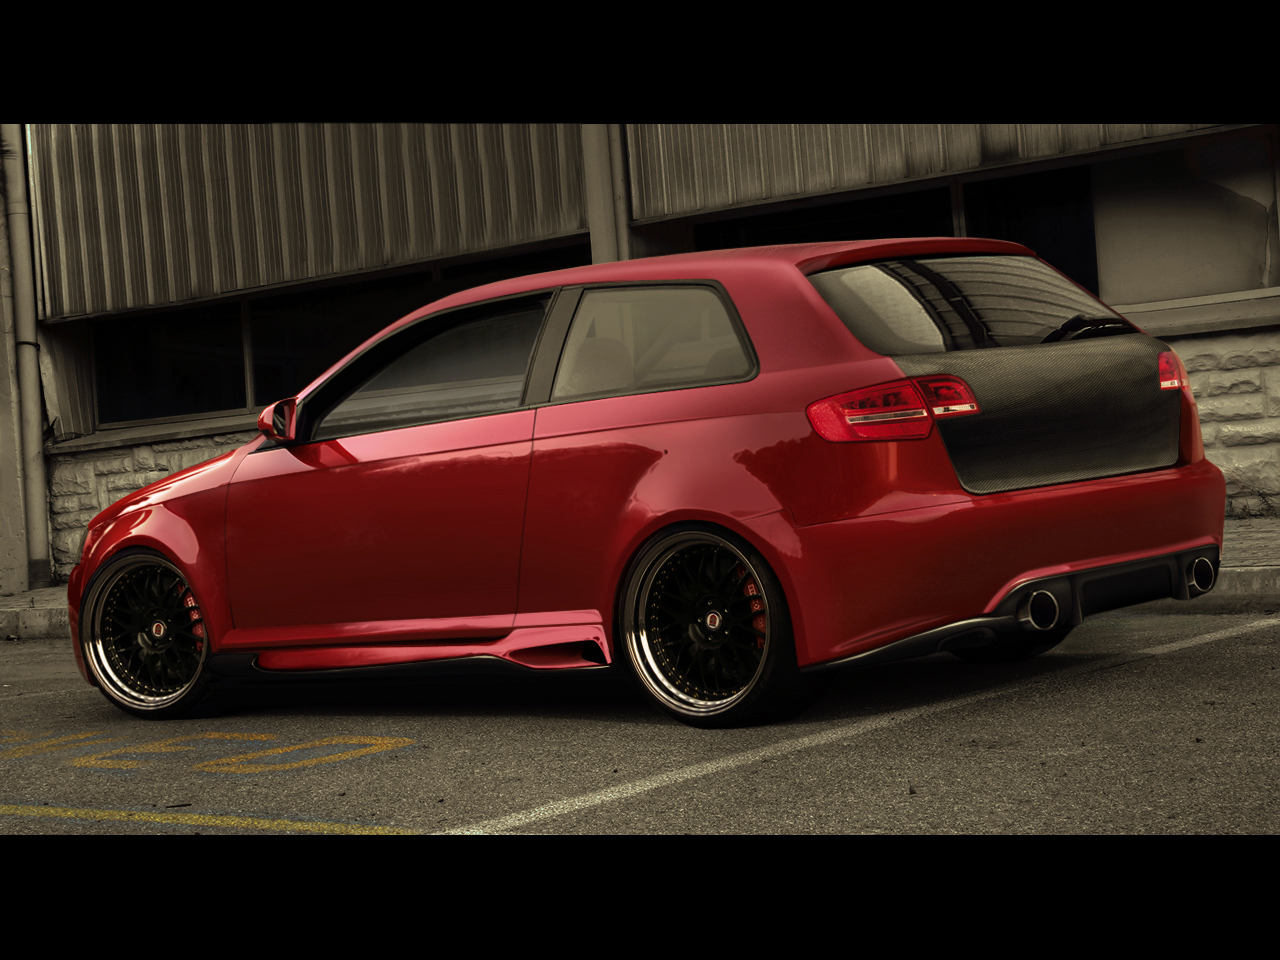 Audi S3 By MagiK